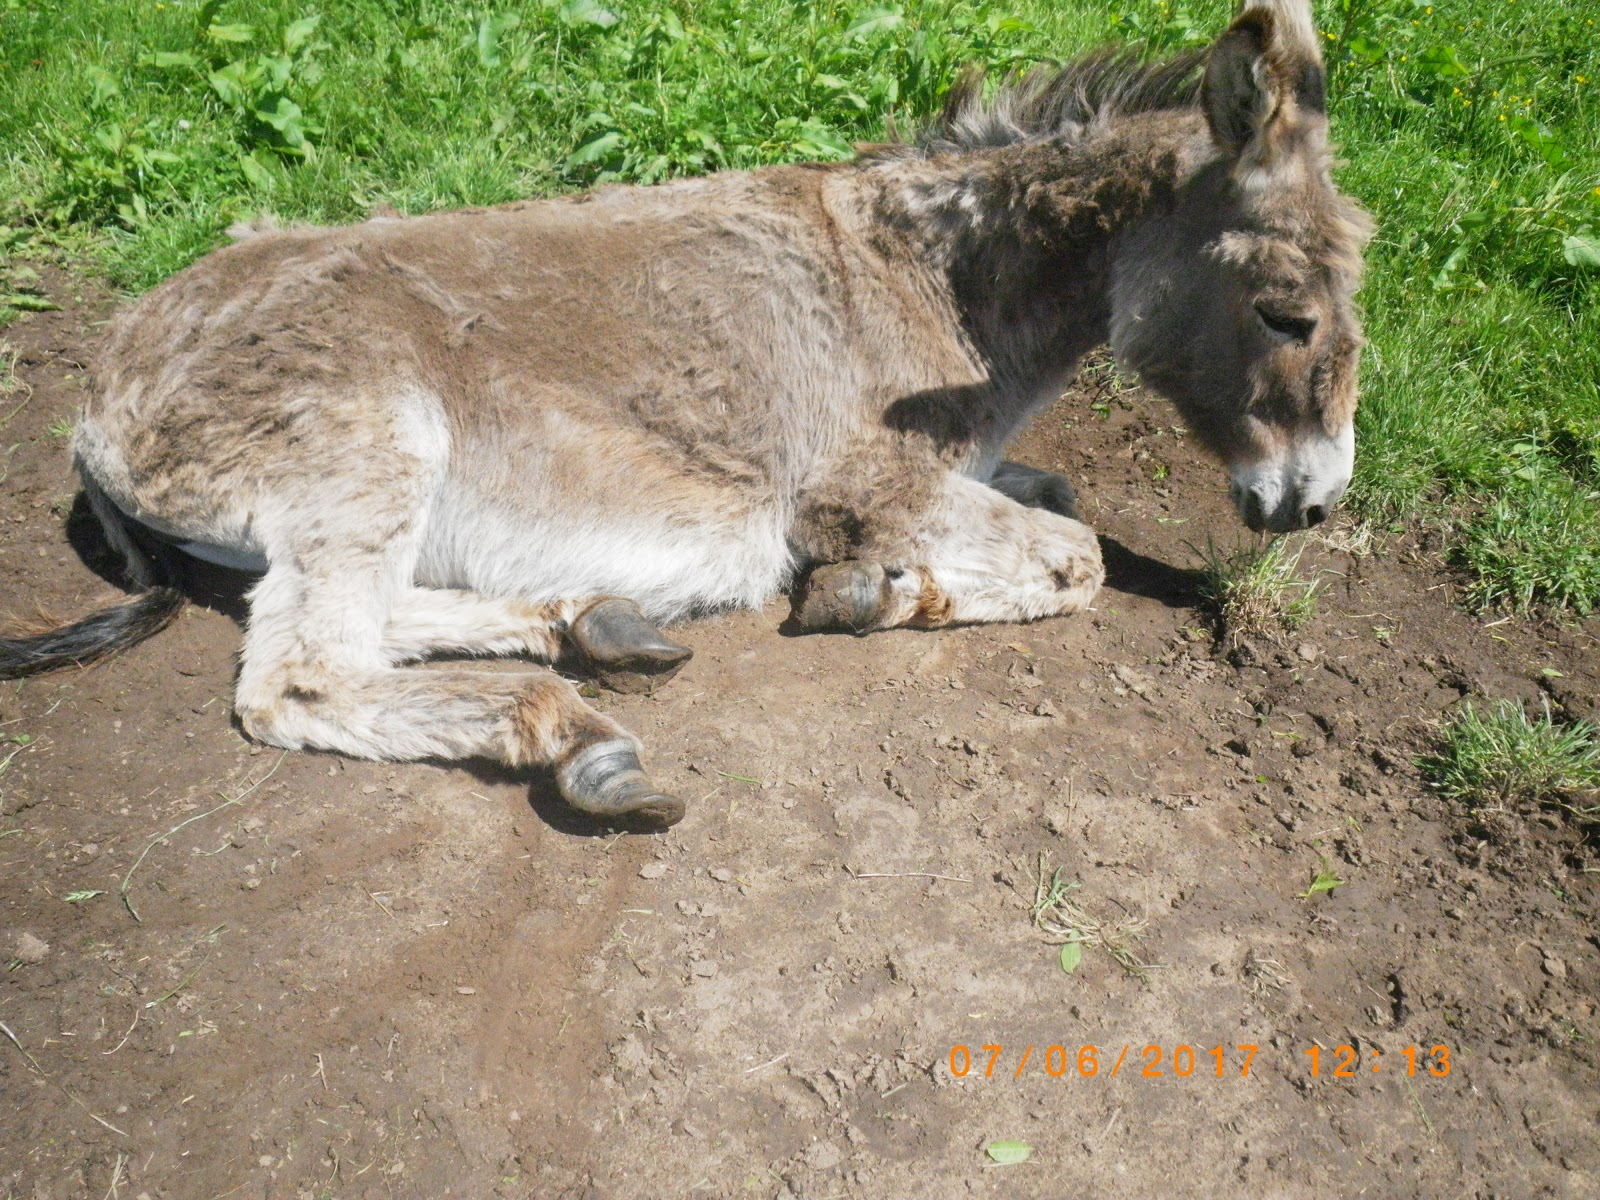 The donkeys struggled to walk with their hooves